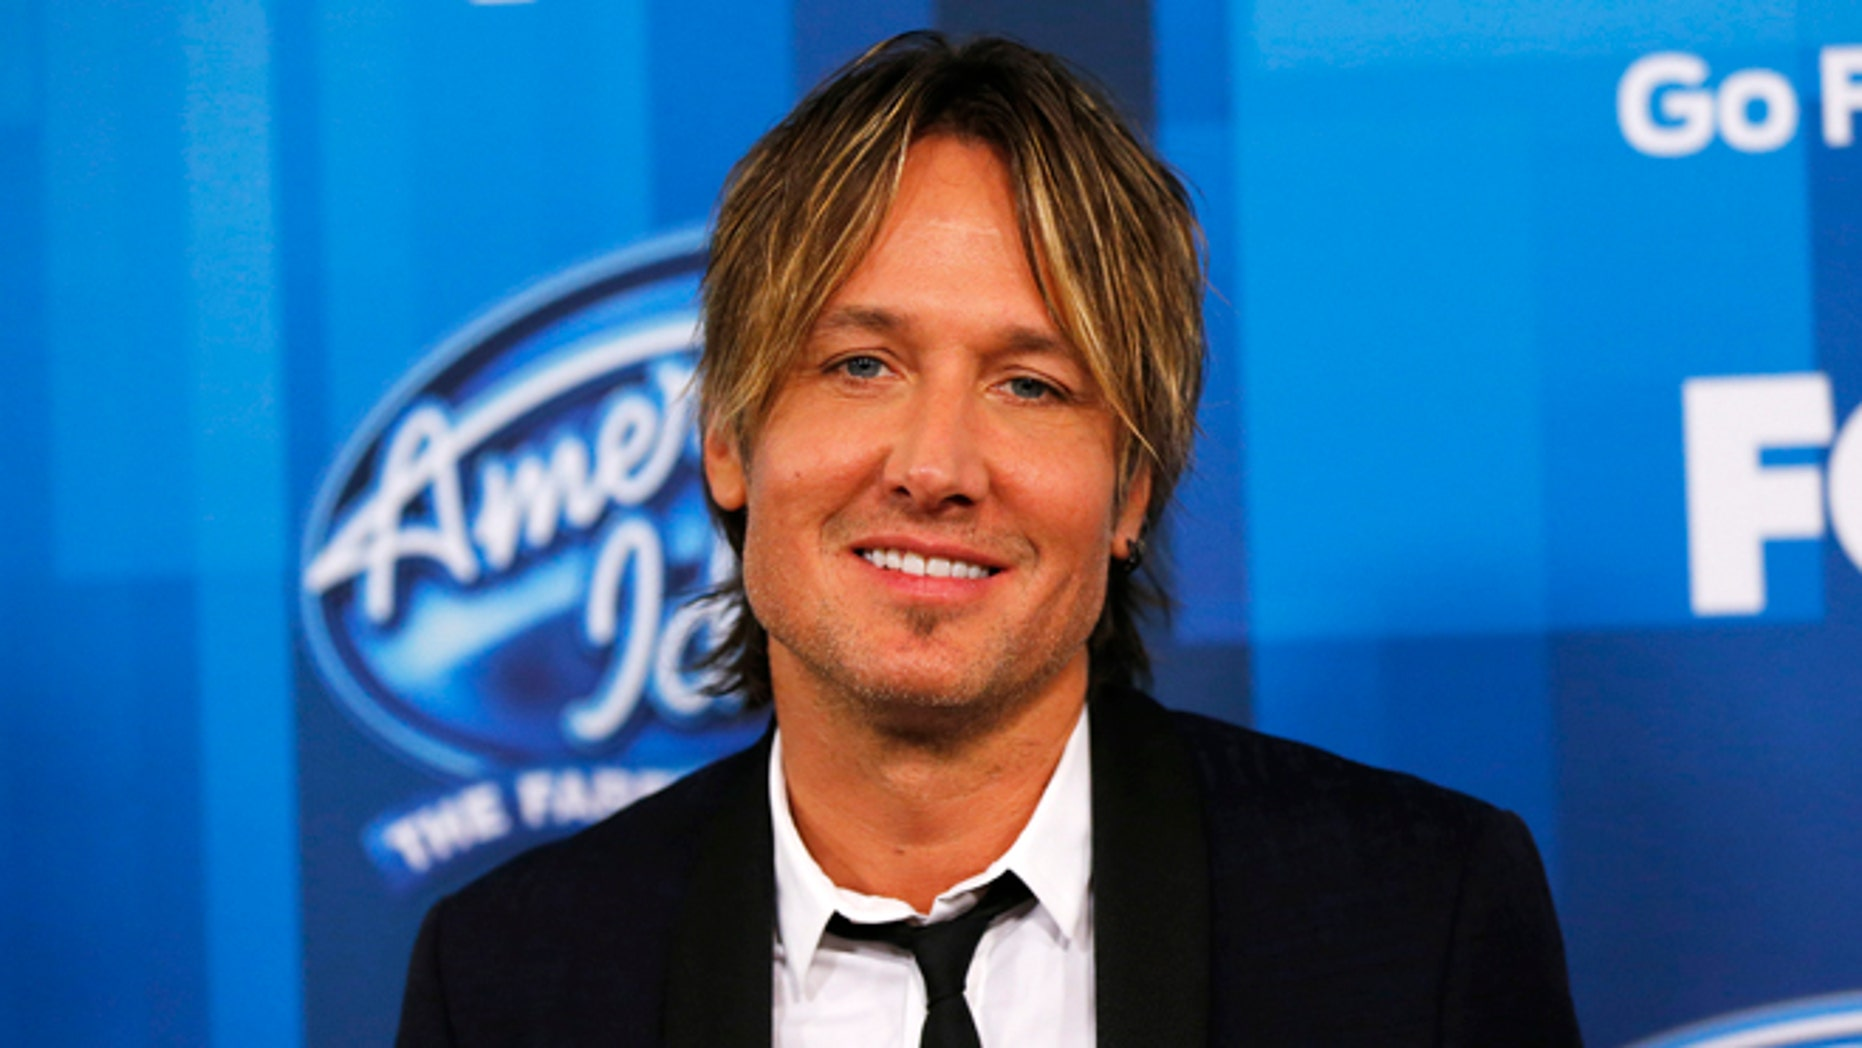 Keith Urban arrives at the American Idol Grand Finale in Hollywood, California April 7, 2016.